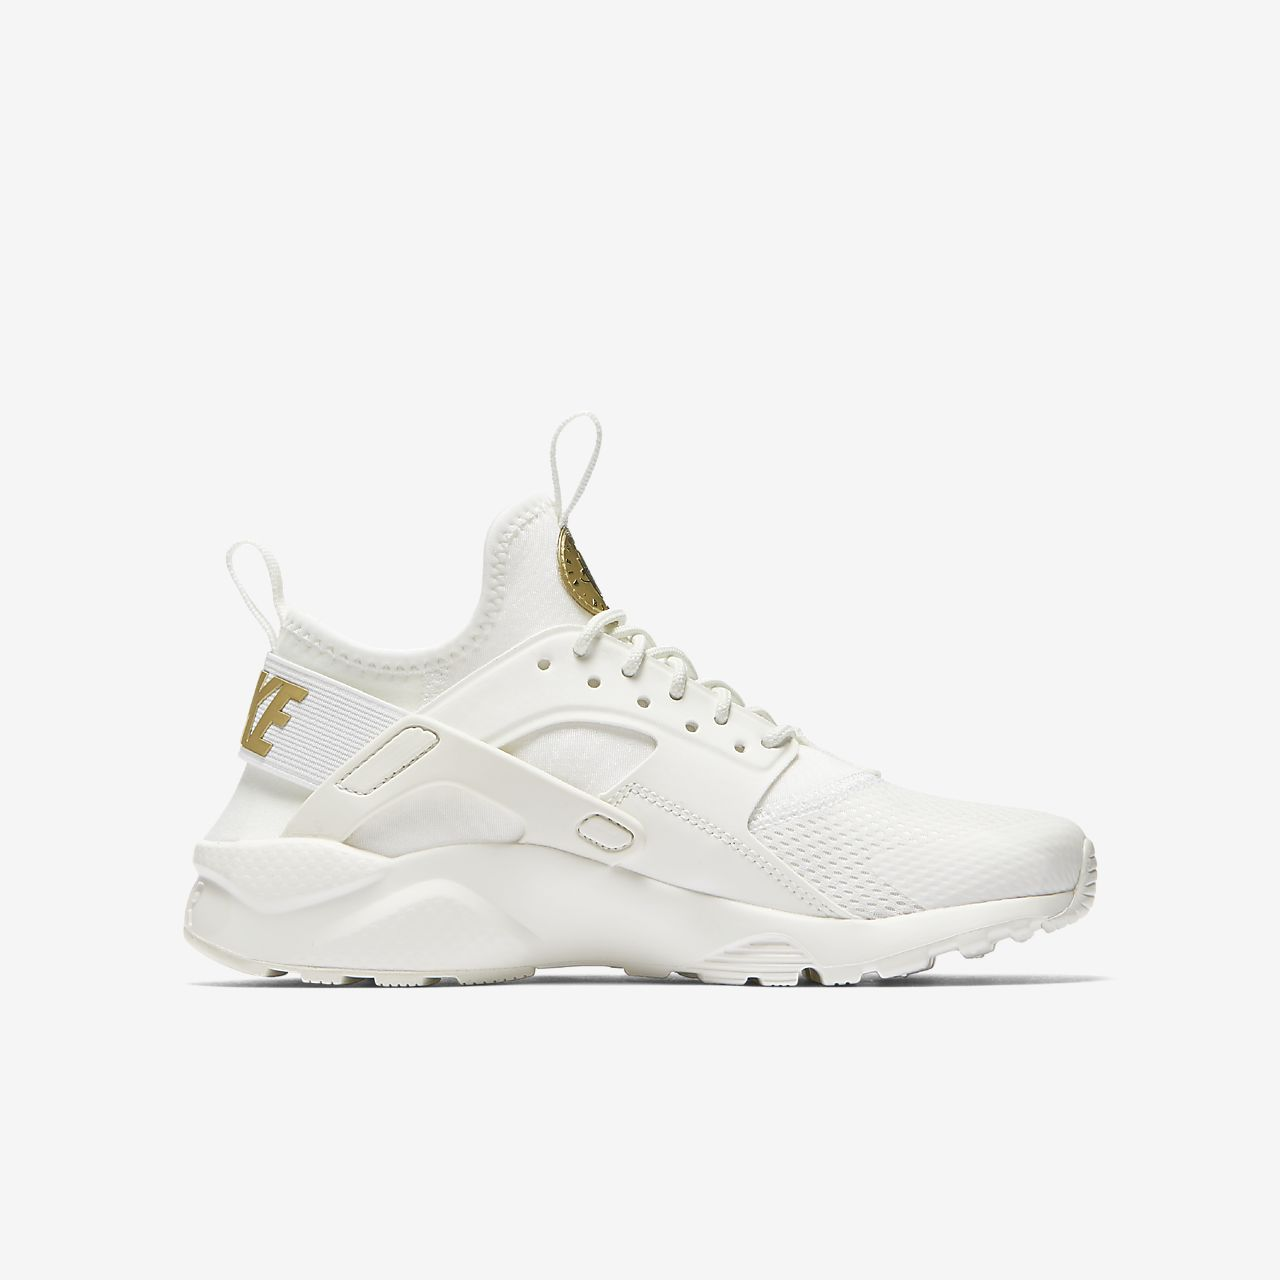 28d9b98e1ed6 ... usa nike huarache white and gold ec5d9 b8331 ...